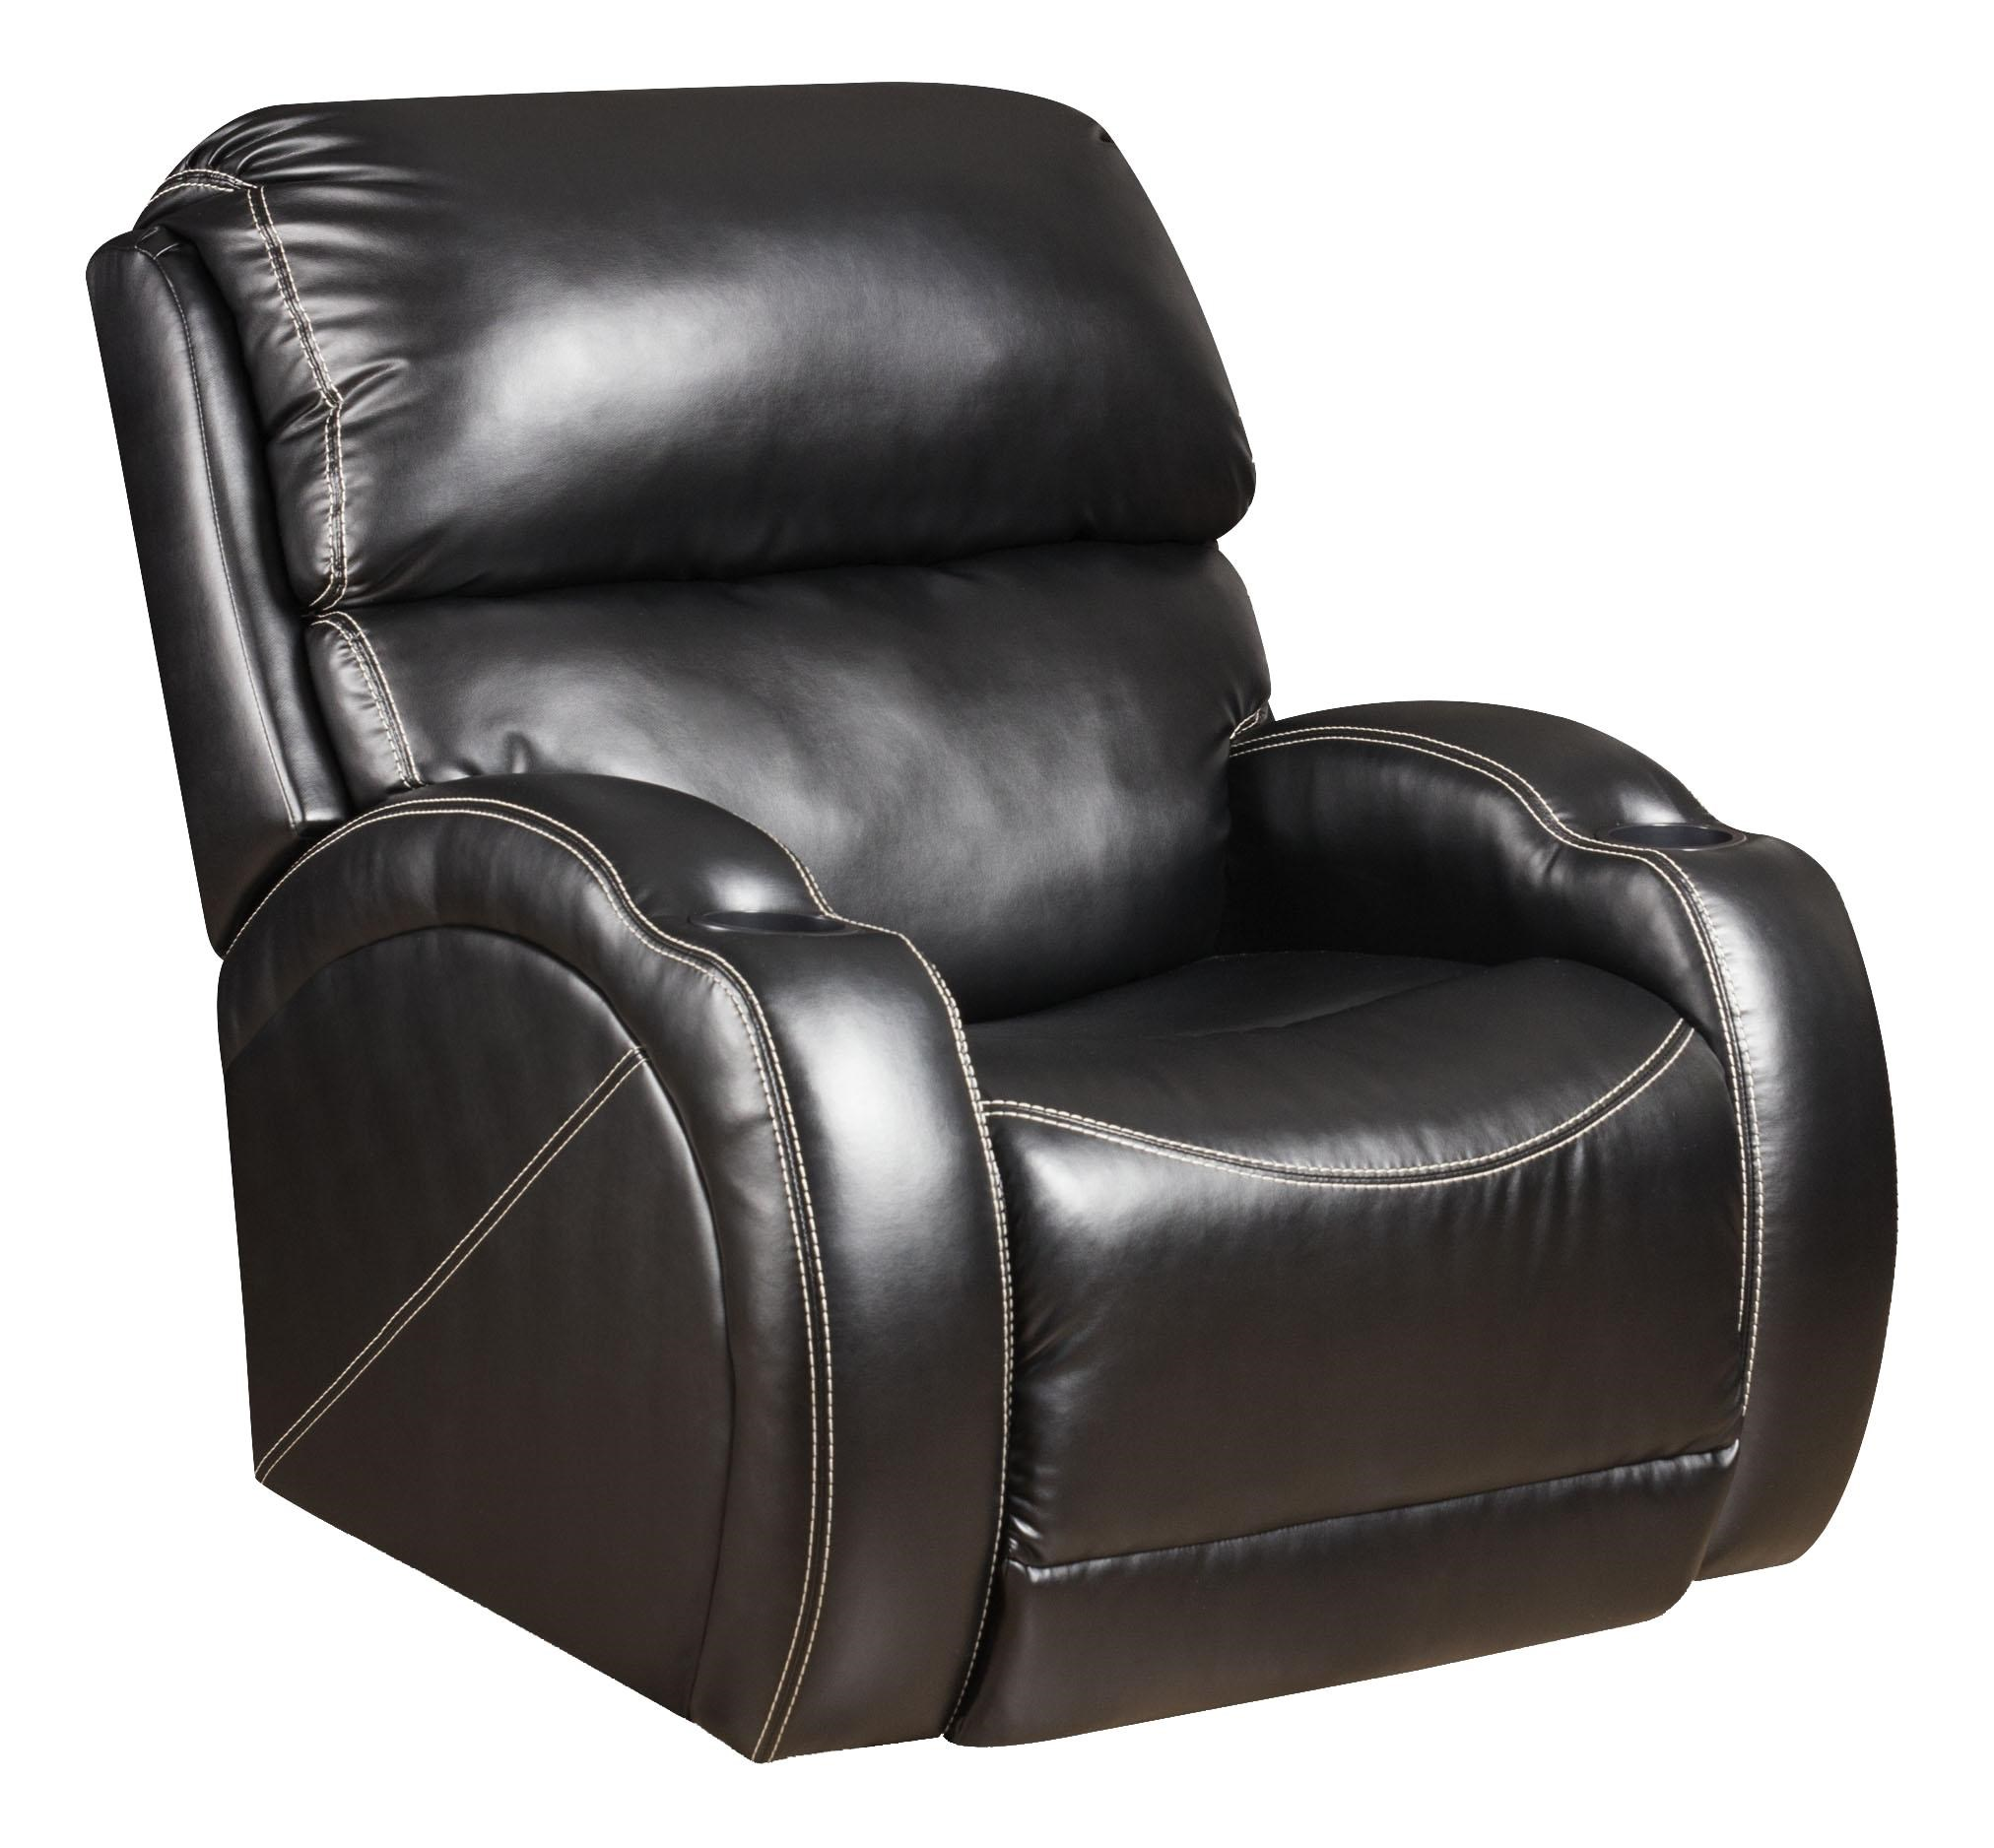 American Furniture Recliners Power Recliner with Cup-Holders and Contemporary Style - Miskelly Furniture - Three Way Recliners  sc 1 st  Miskelly Furniture & American Furniture Recliners Power Recliner with Cup-Holders and ... islam-shia.org